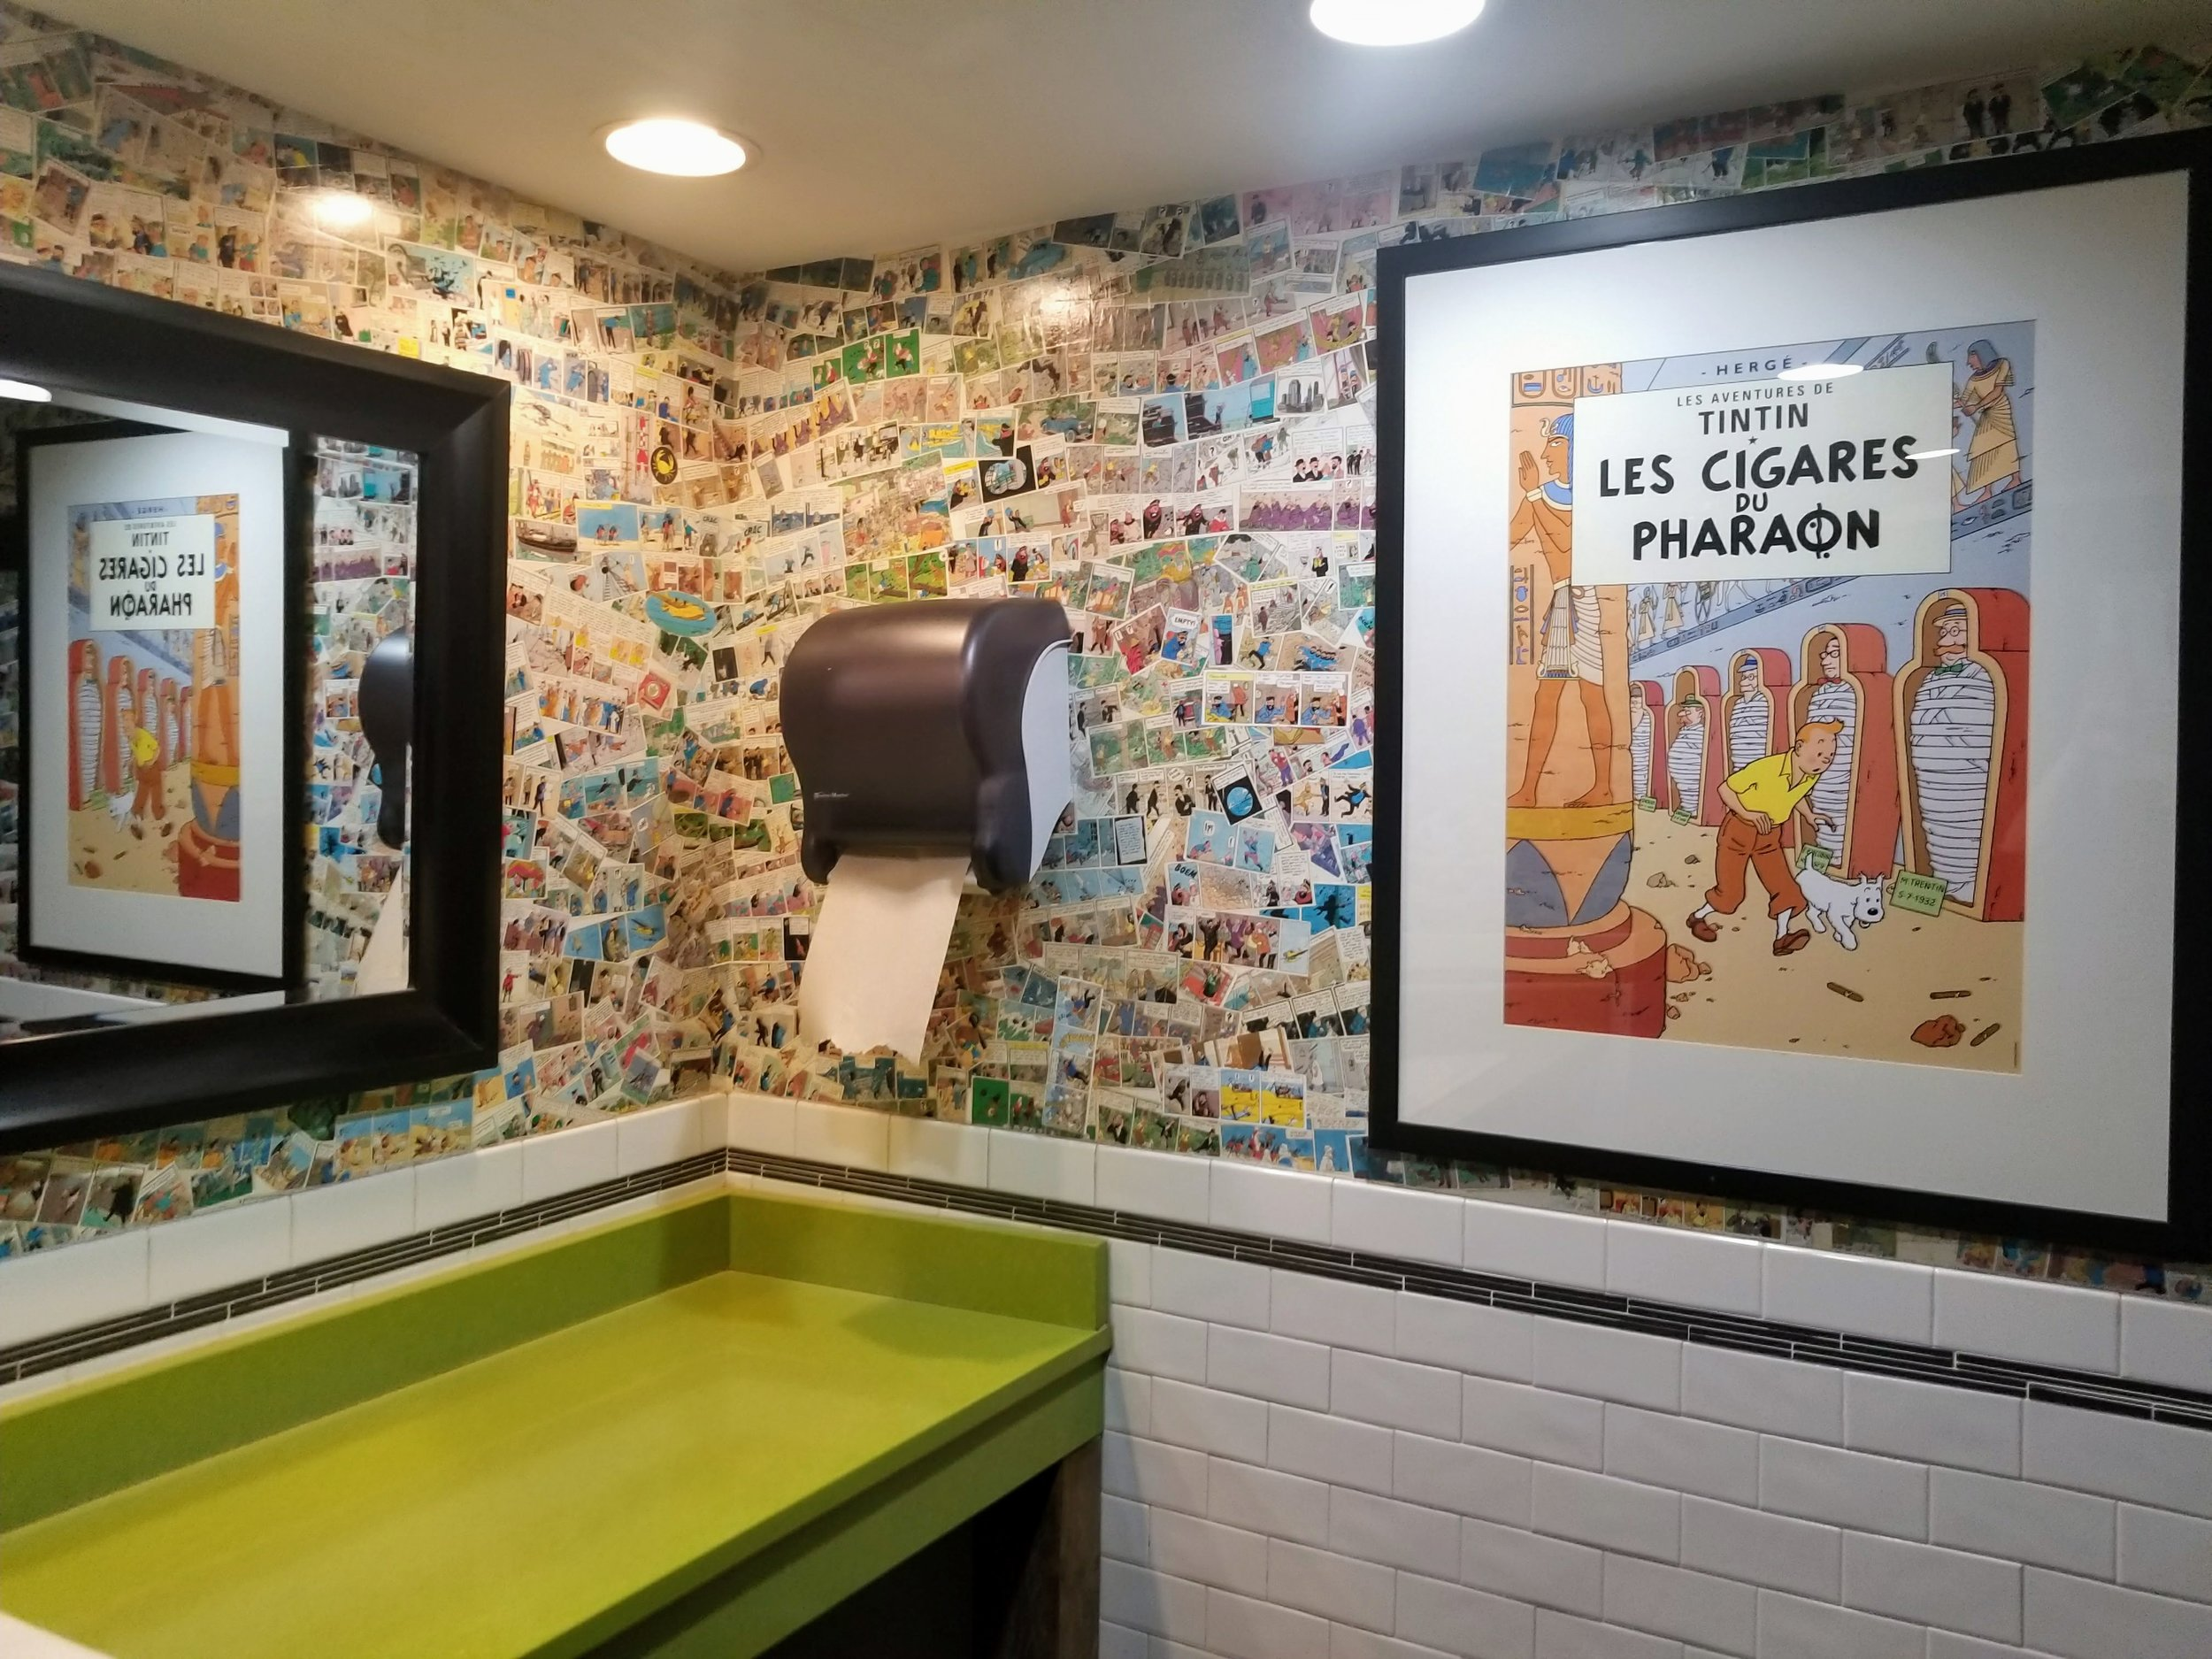 Tintin comics covering the walls of the bathroom in the Trappe Door